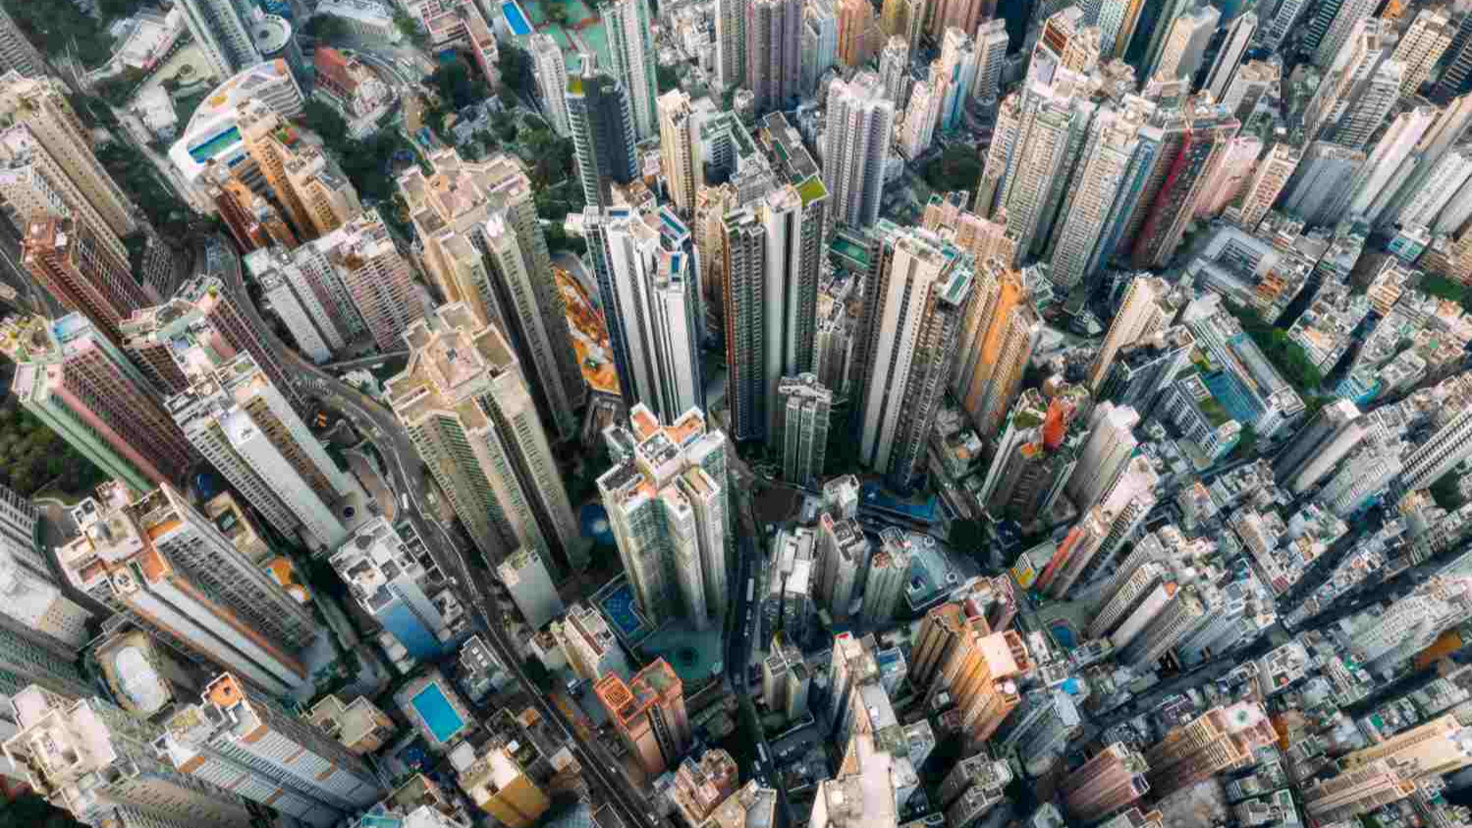 Hong Kong is in technical recessio nas  violence increases